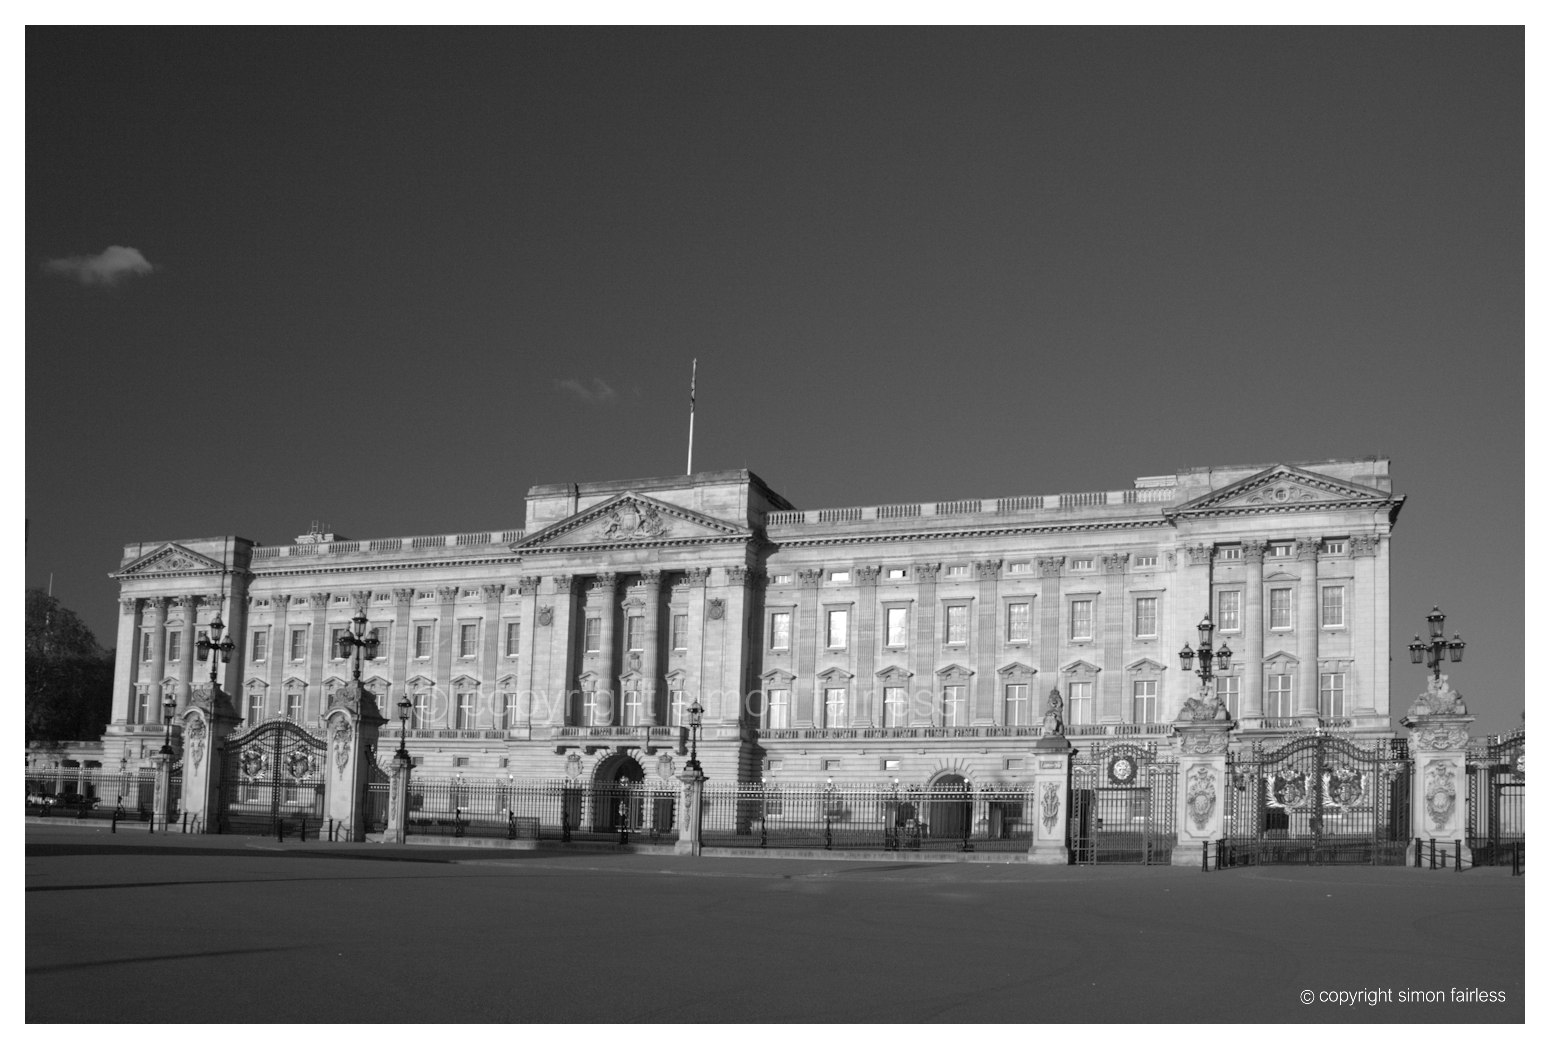 Image of Buckingham Palace London